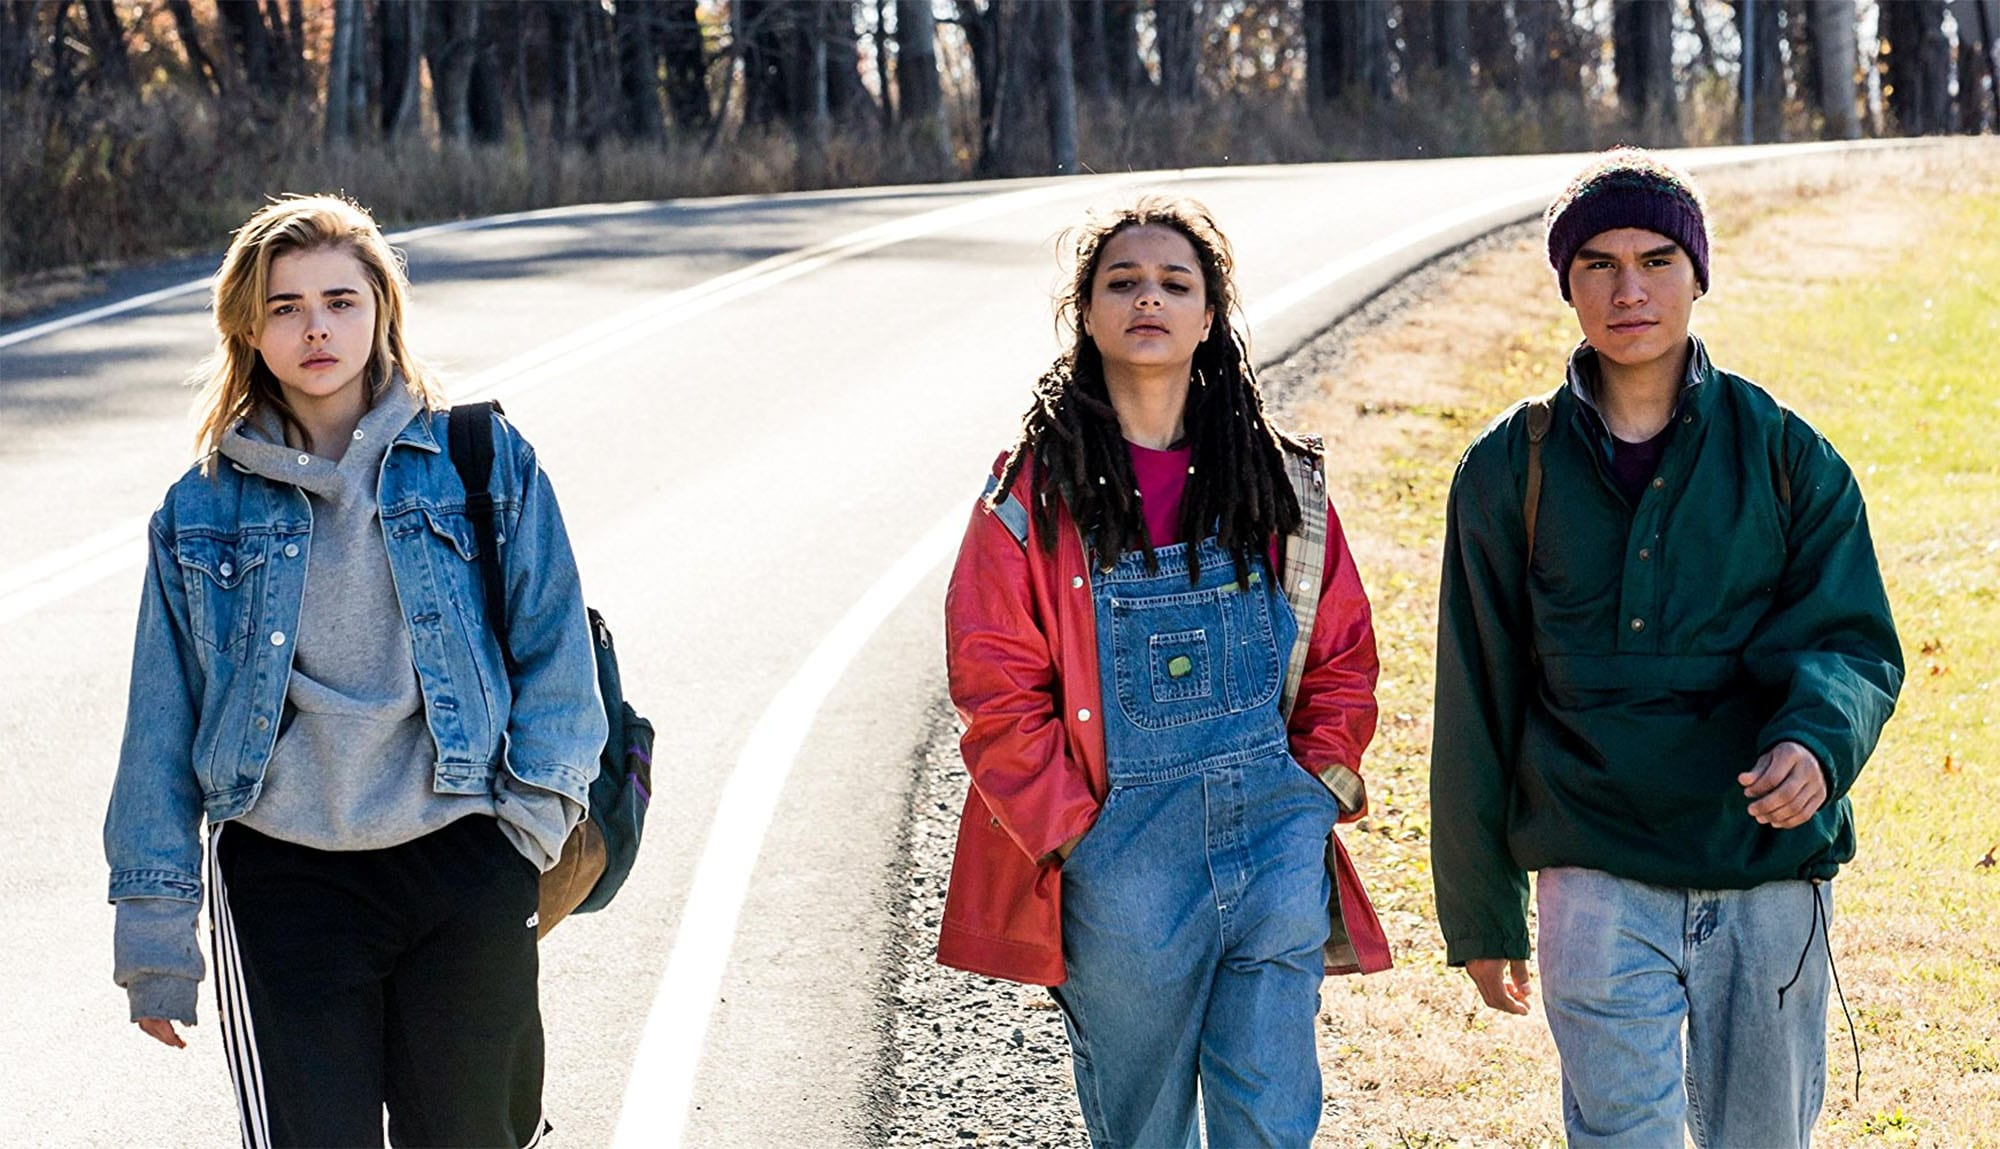 'The Miseducation of Cameron Post' follows a girl sent to a gay conversion therapy center after getting caught with another girl on prom night.